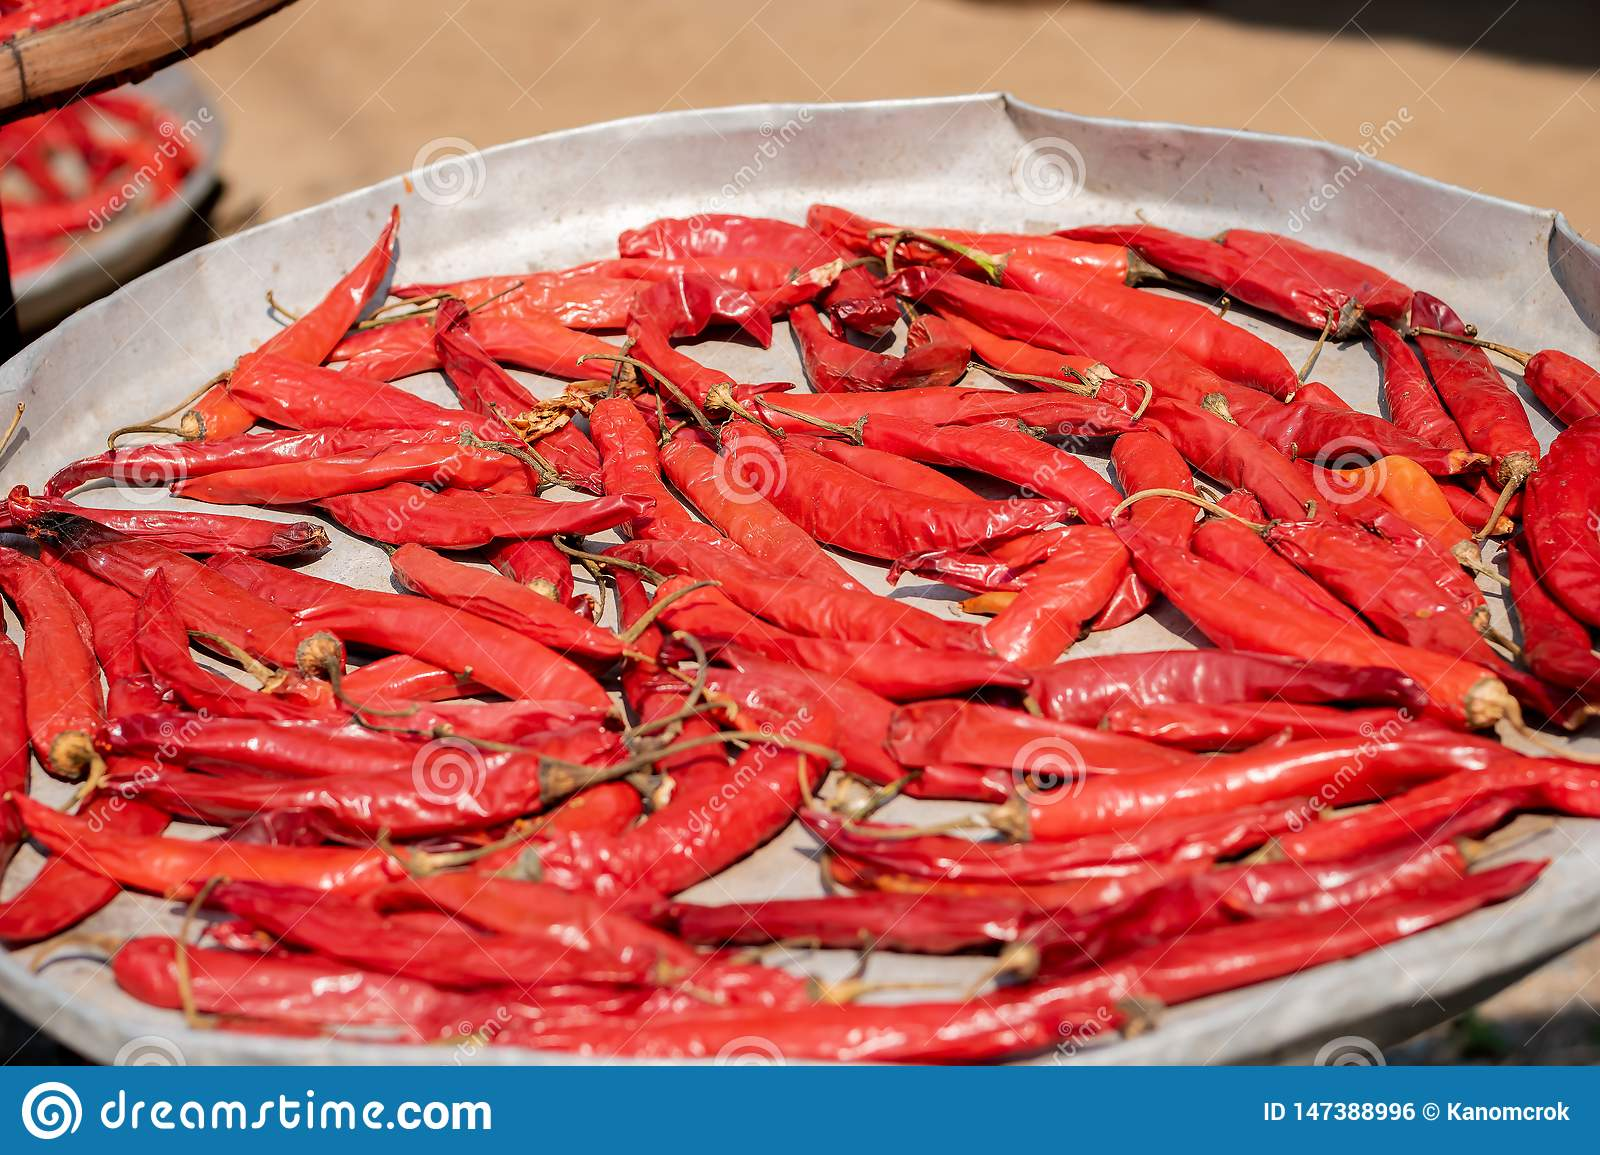 Pile of dried red hot chili peppers